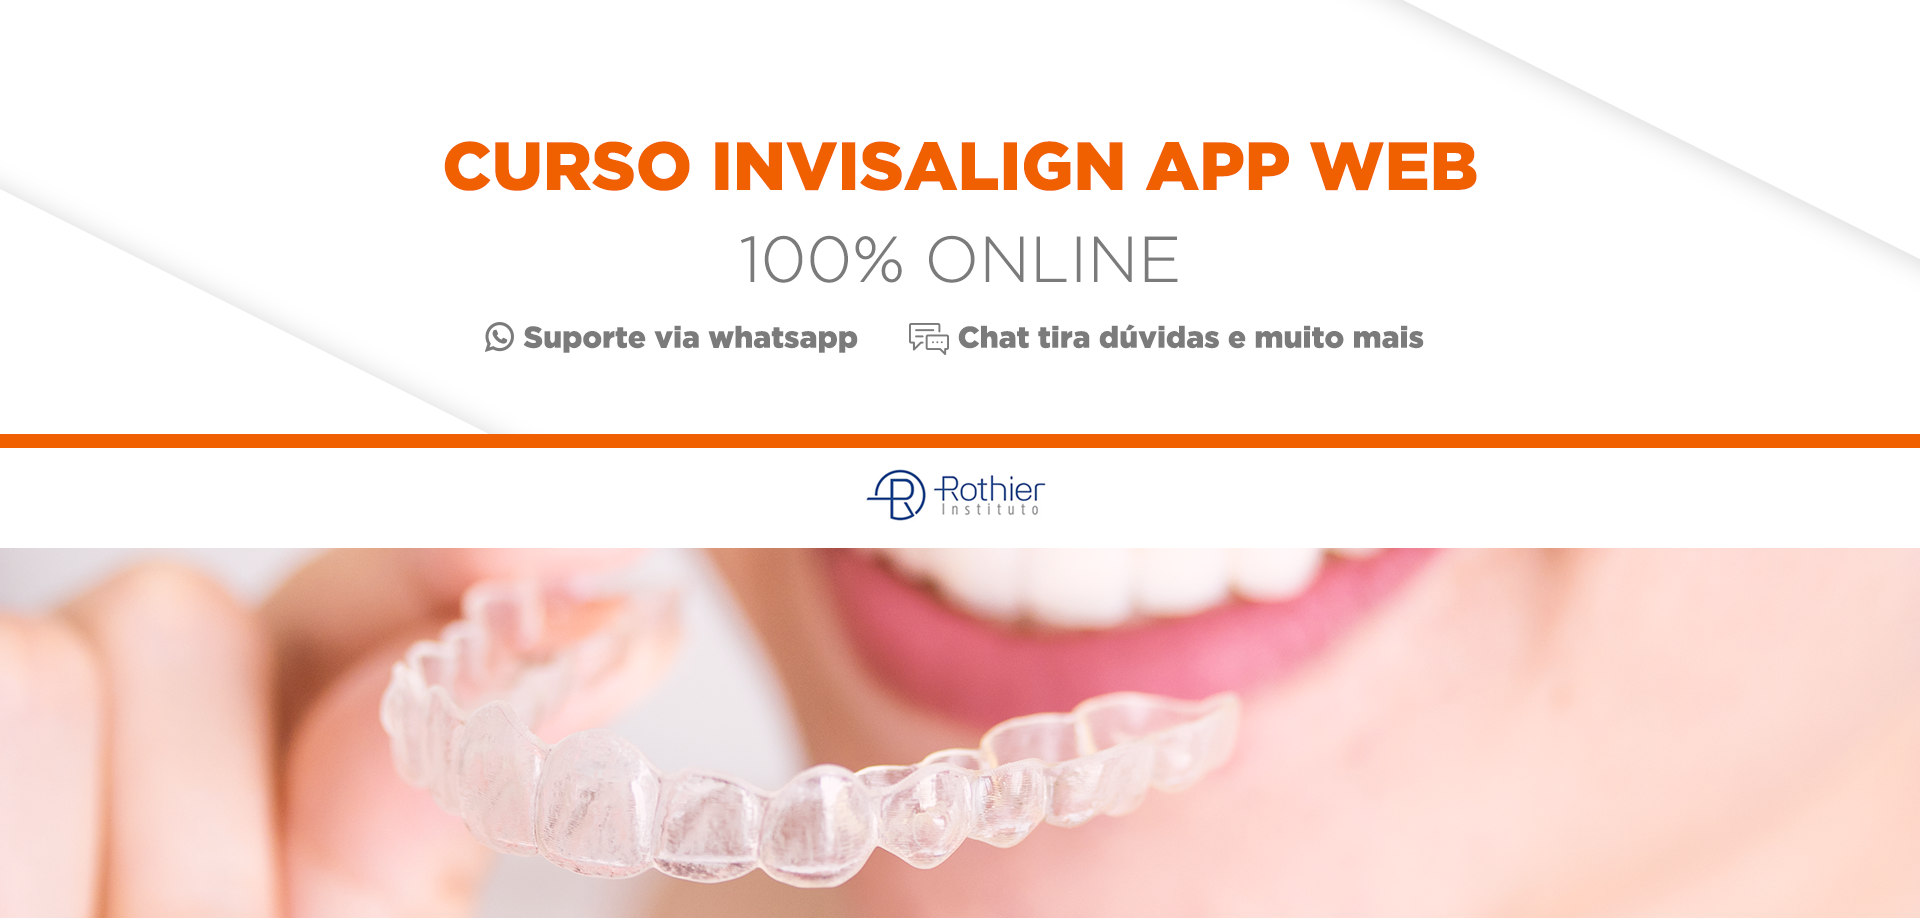 rothier-invisalign-app-web-100-onlineArtboard-1.png